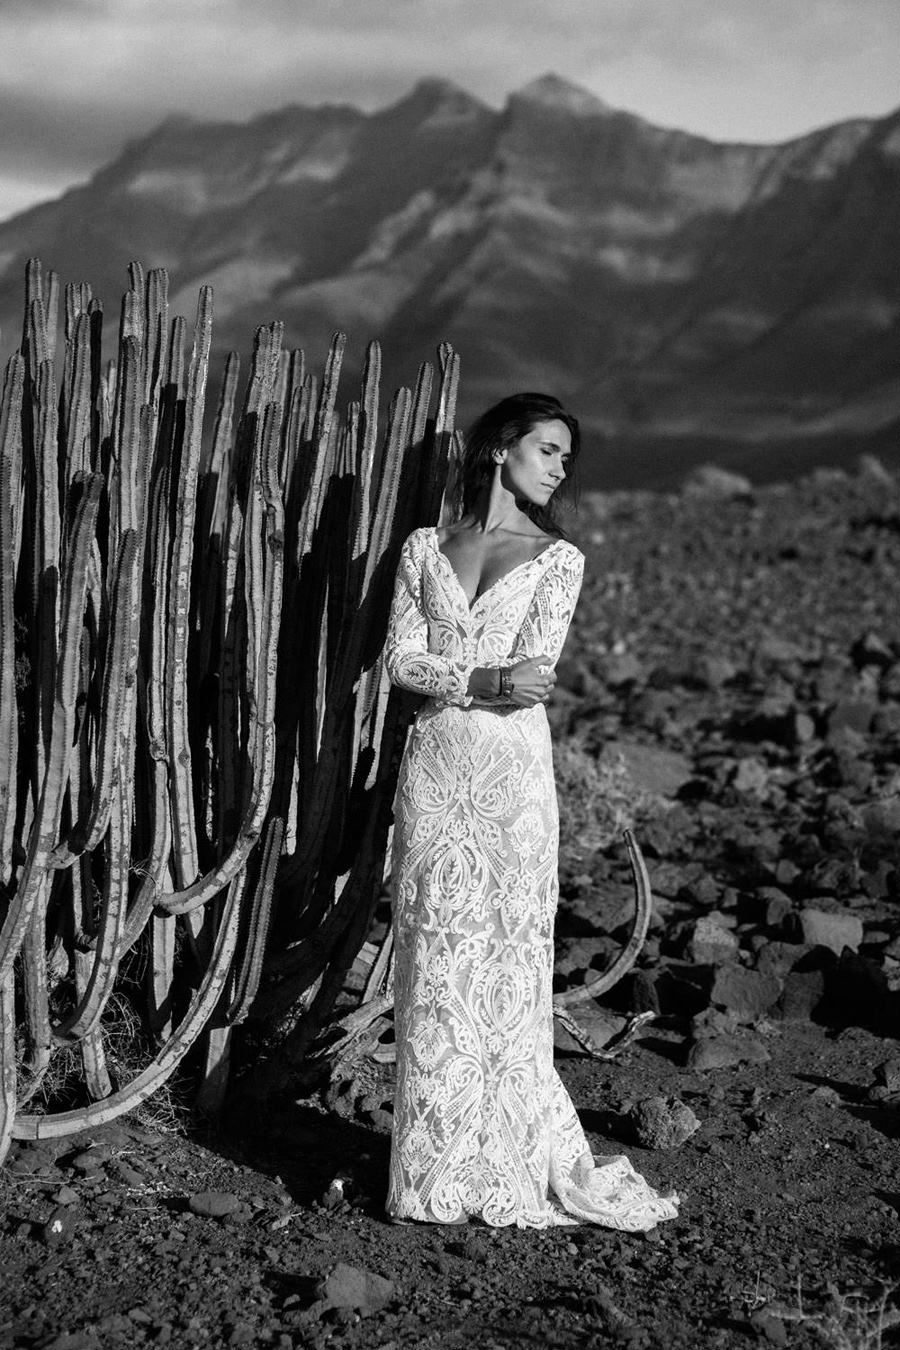 Joanna-Jaskolska-Photography-Wedding-Photographer-Fuerteventura-mountains-bride-cactus-black-and-white